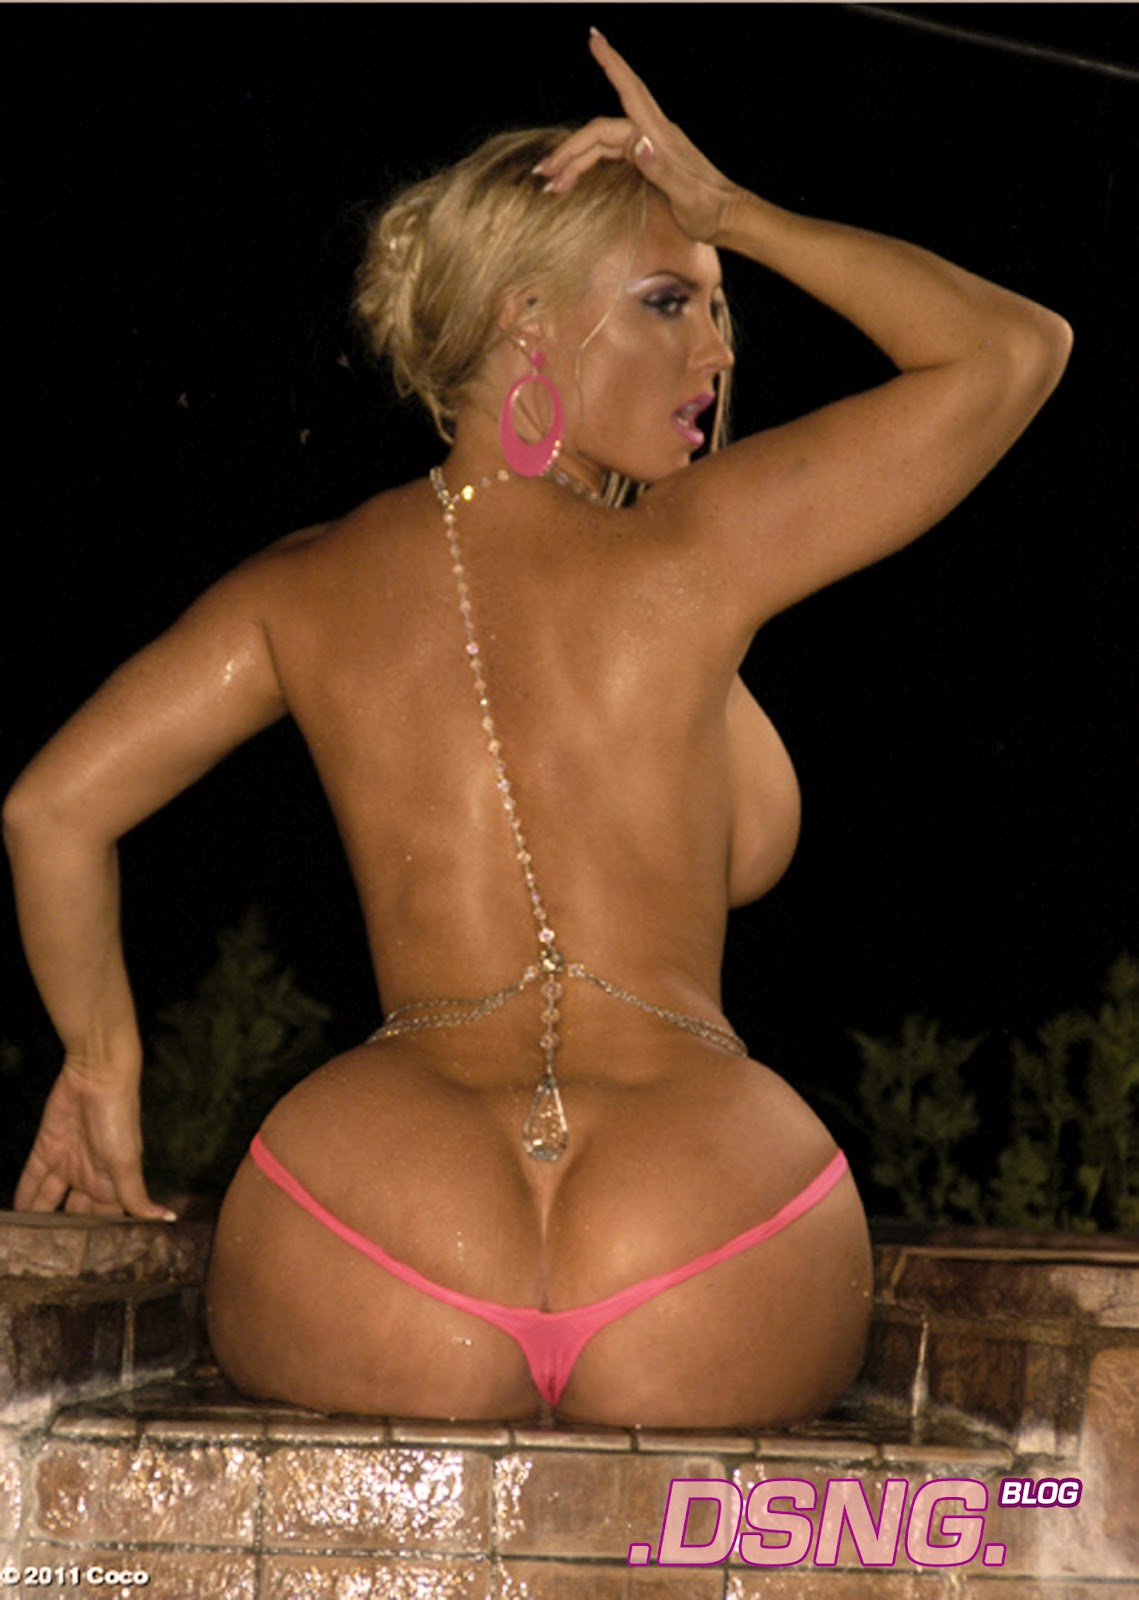 Dsngs Sci Fi Megaverse Coco Austin - Classic Photo Gallery-4259